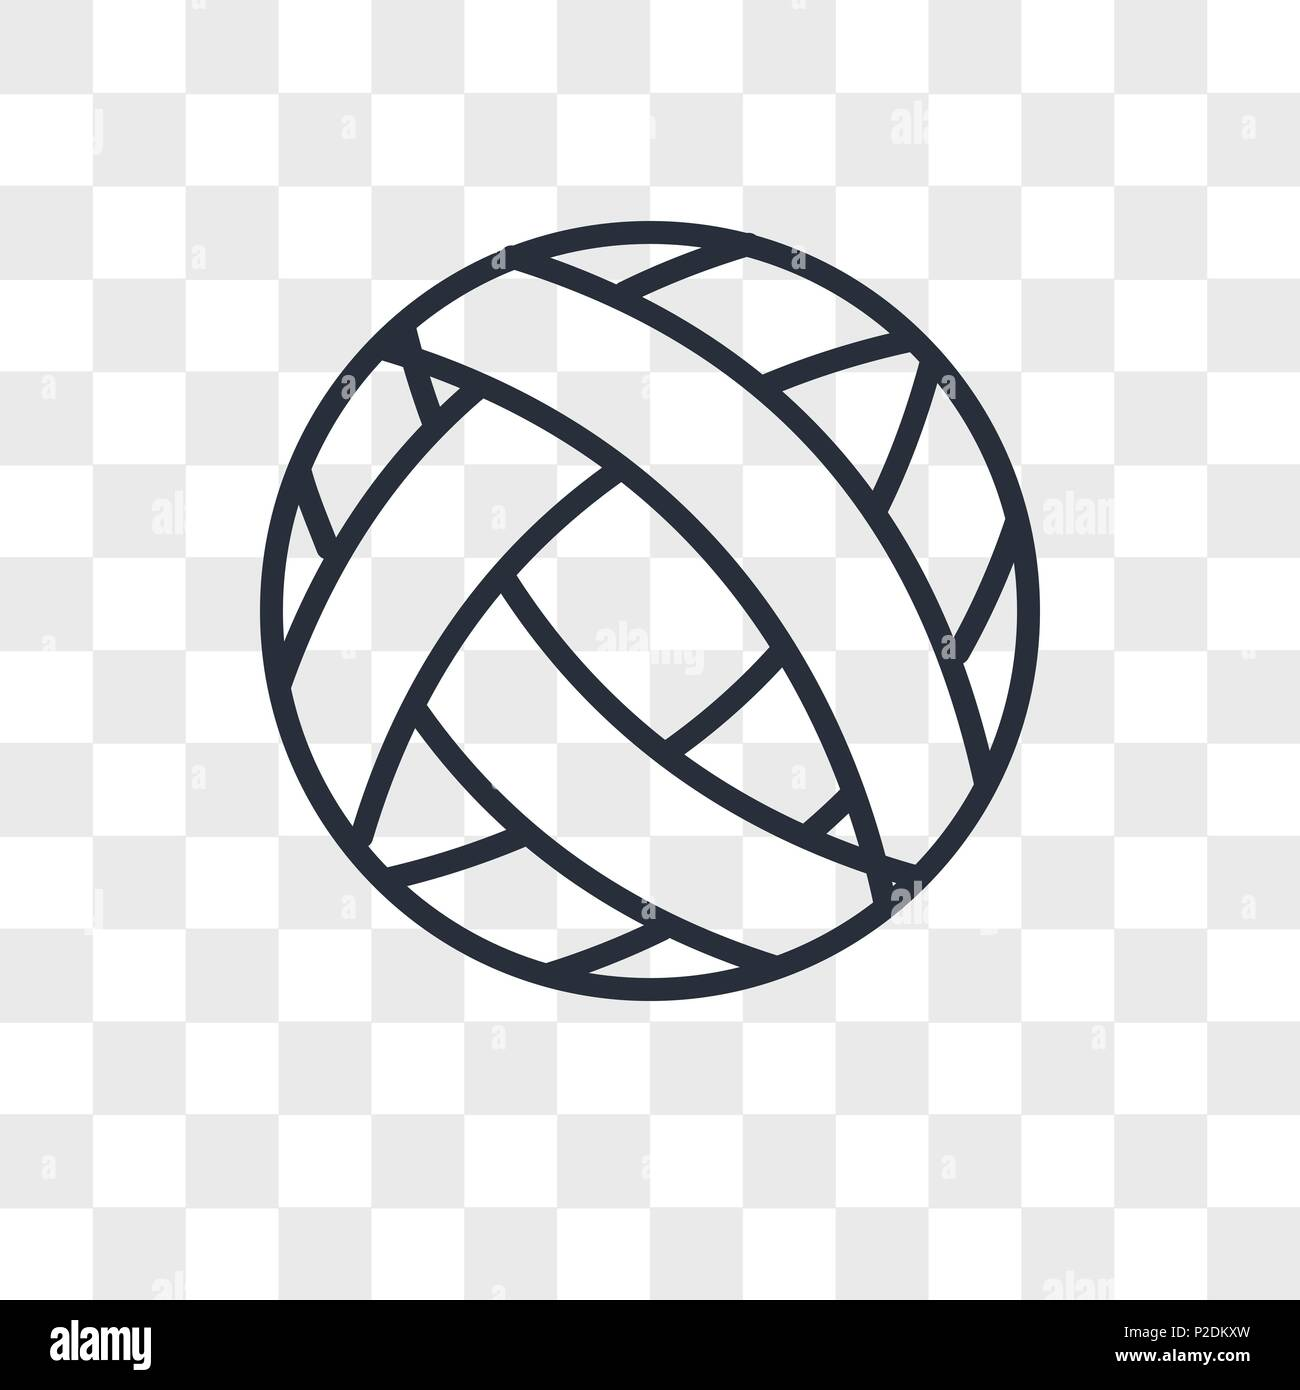 Football Vector Icon Isolated On Transparent Background Football